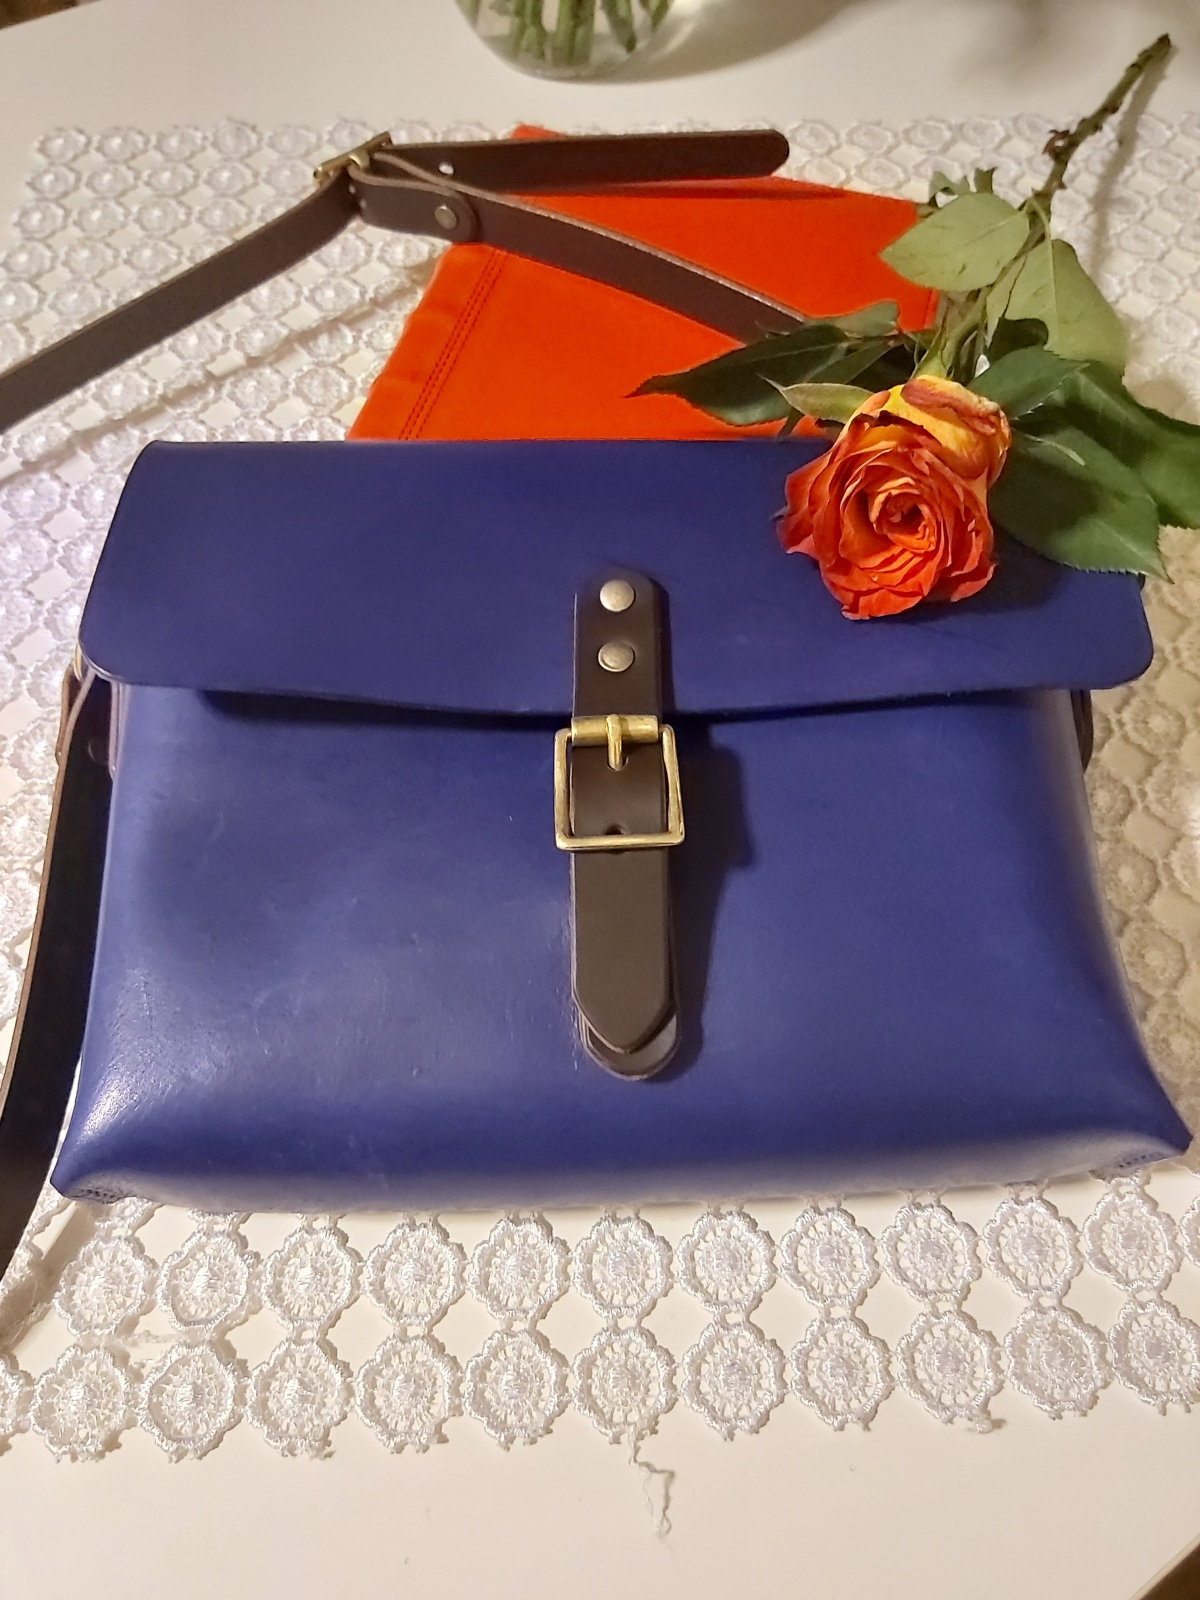 My first hand stitched leather bag – Leather Craft Workshop Days –review